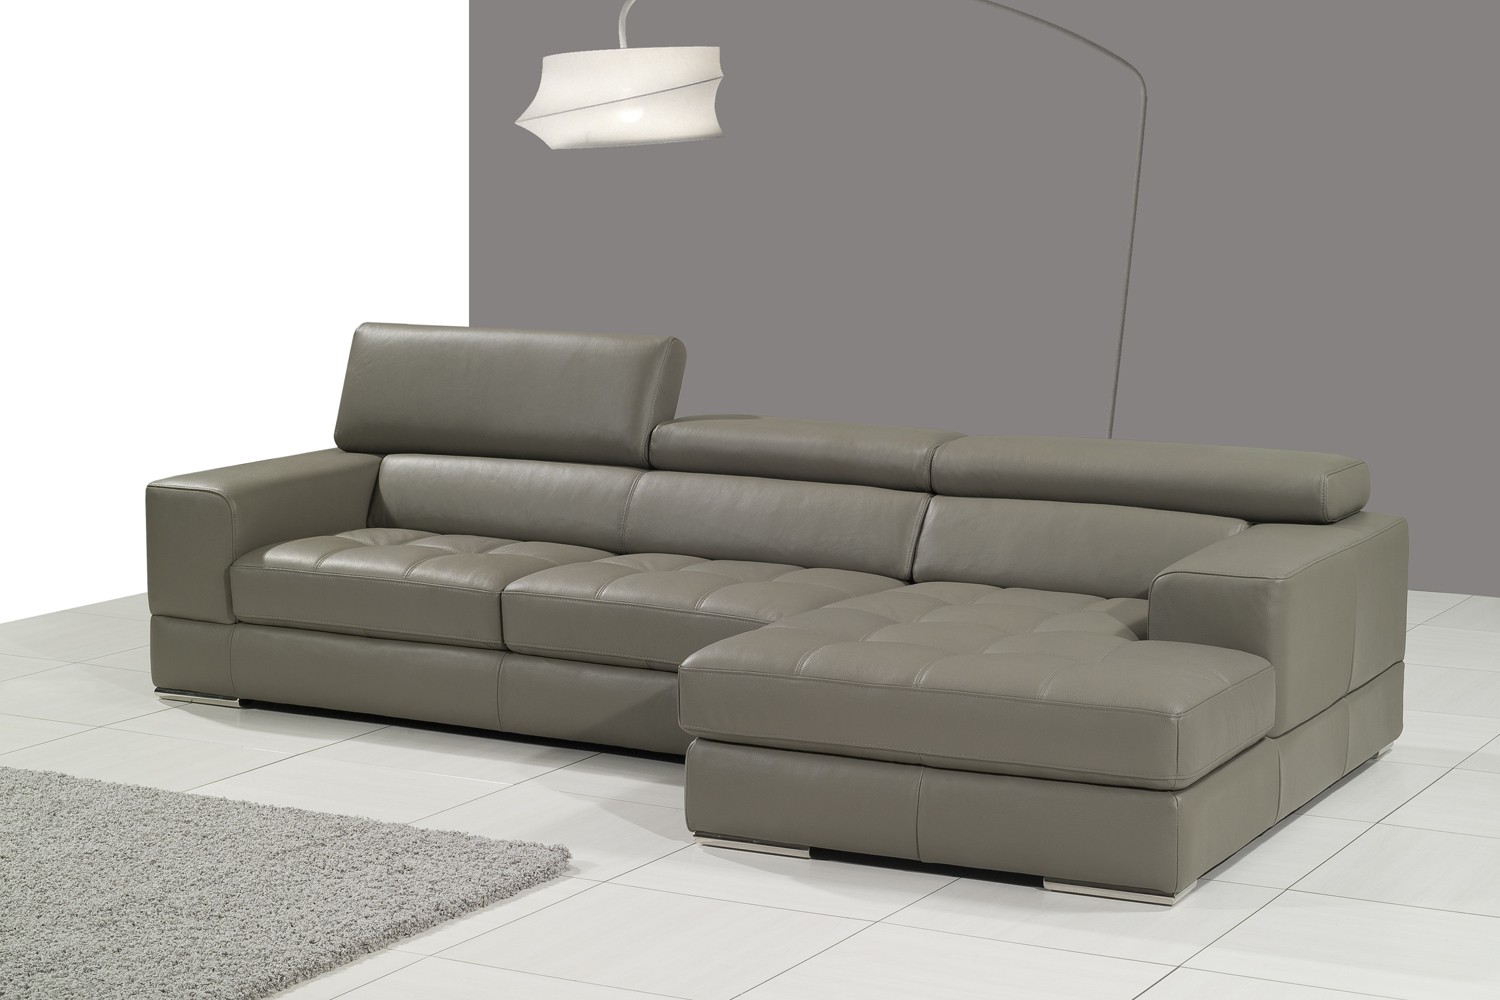 Gray Leather Sectional Couch Couch Sofa Ideas Interior